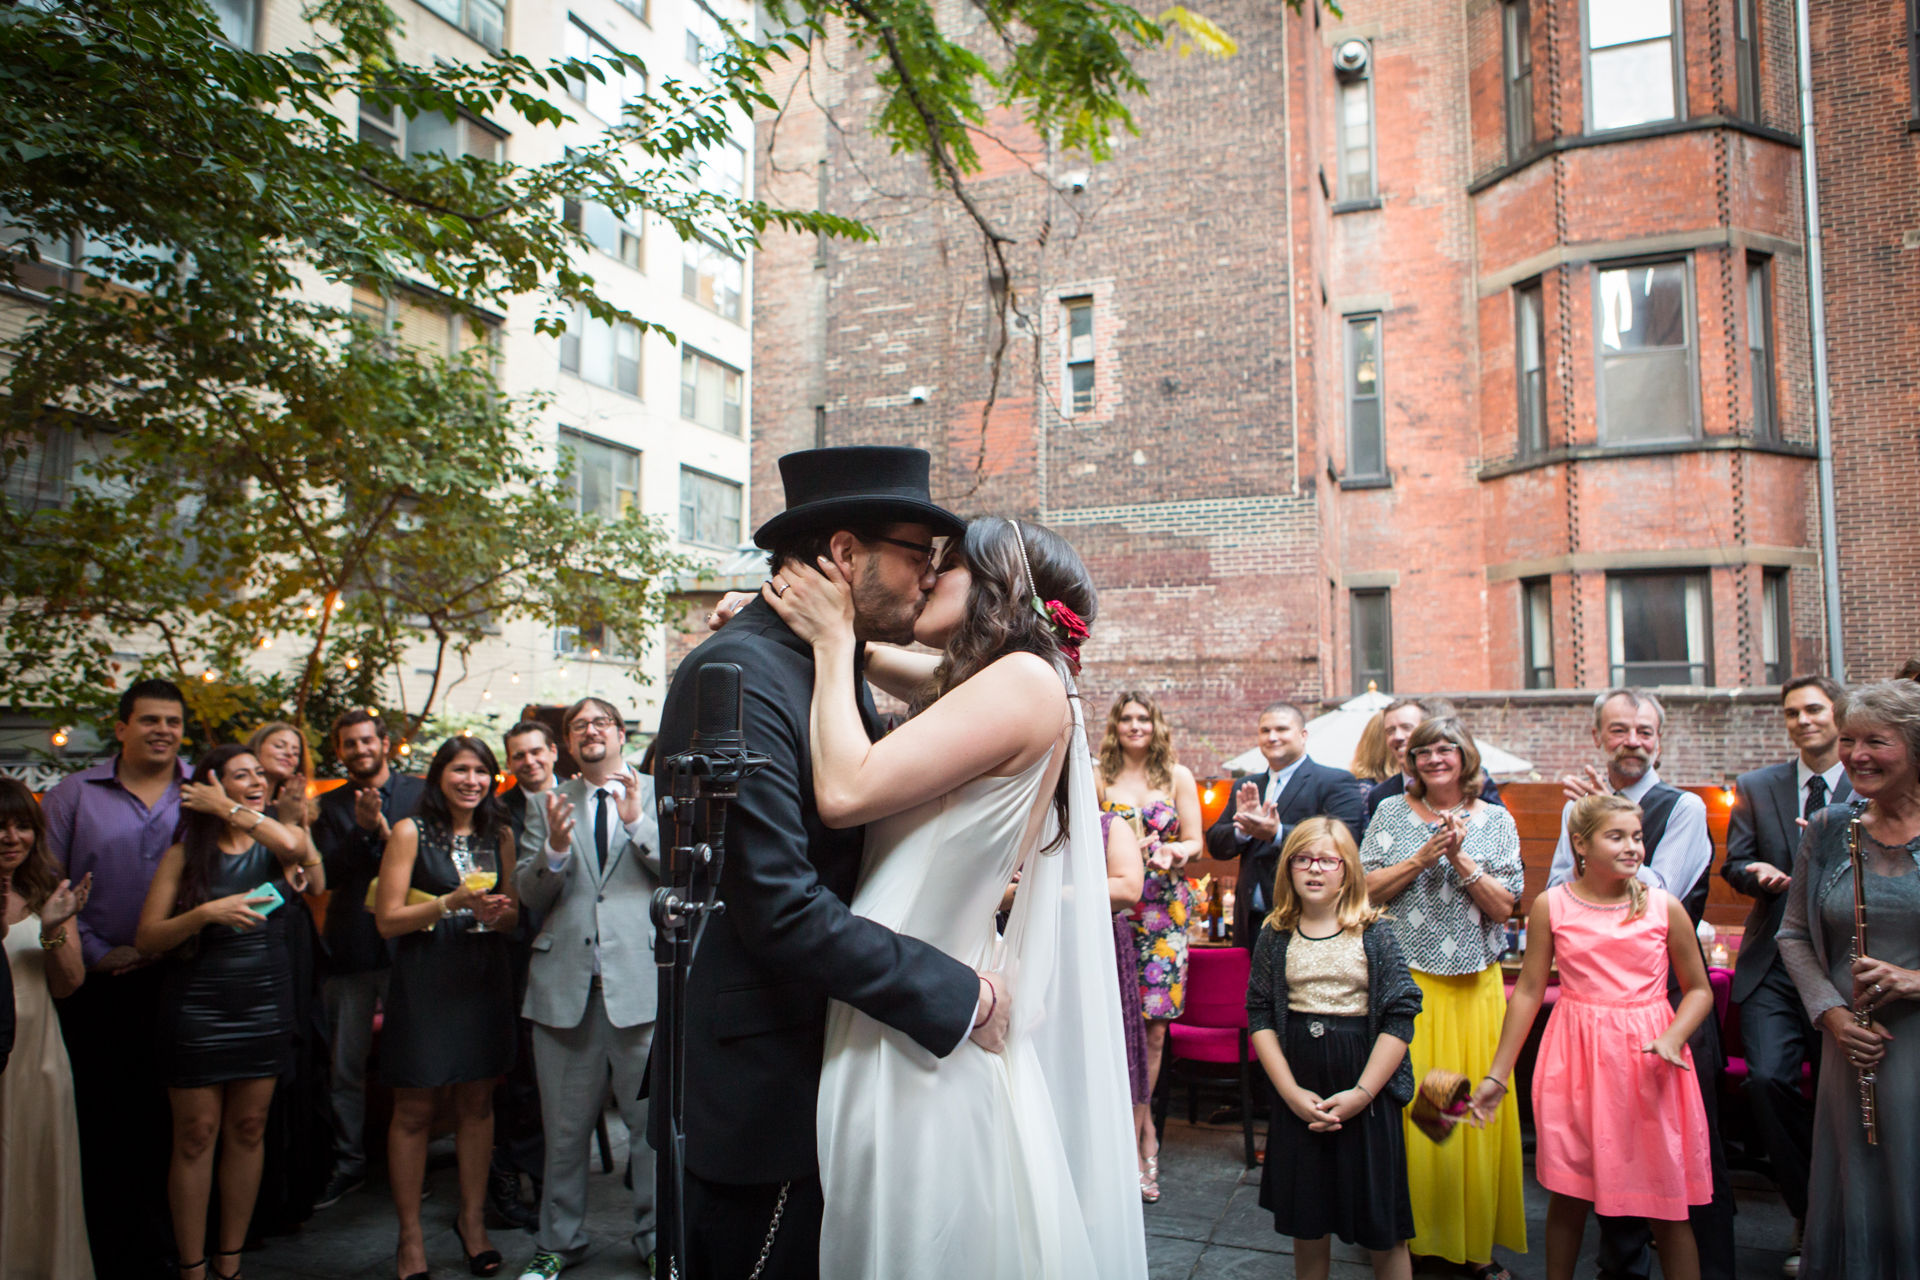 The bride and groom kiss for the first time during their wedding ceremony